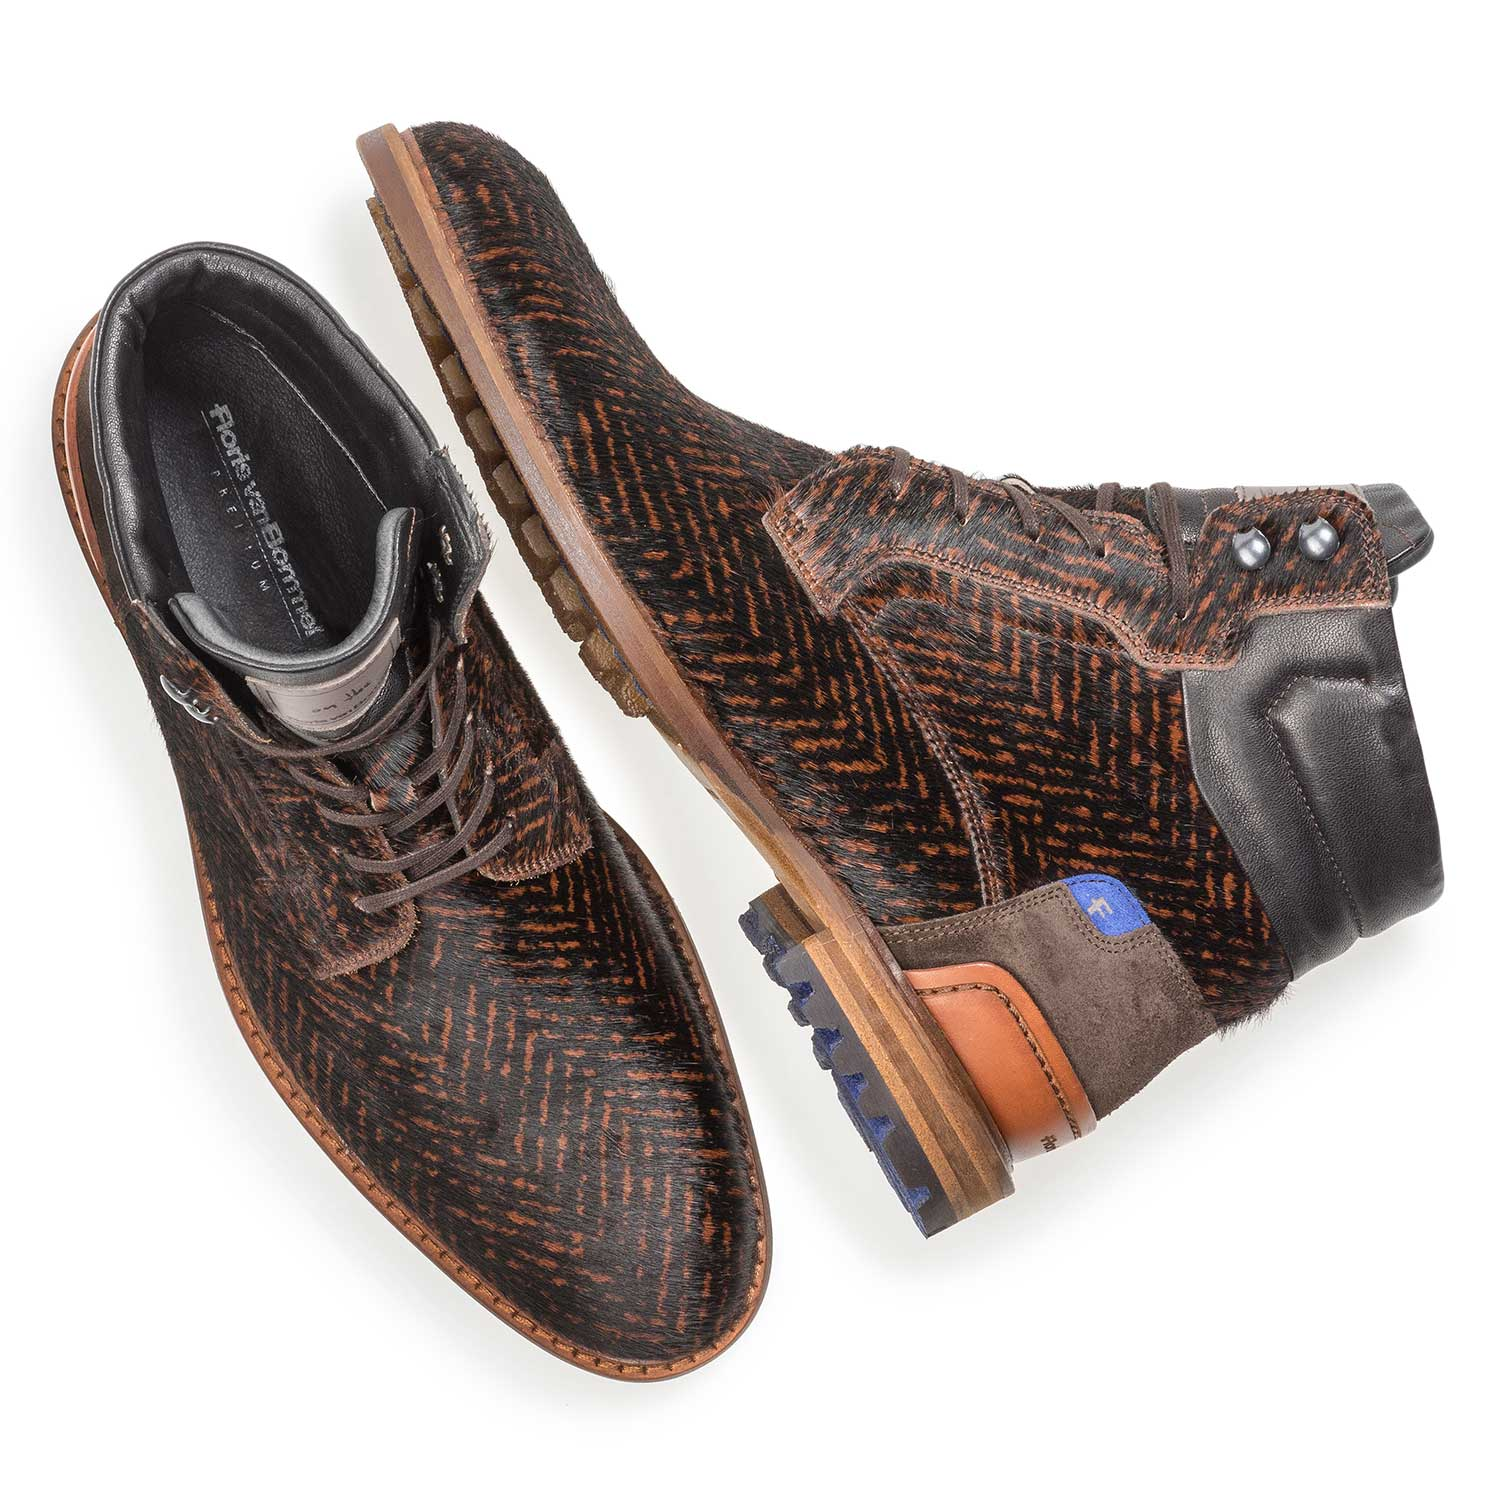 10641/01 - Premium cognac-coloured printed pony hair lace boot